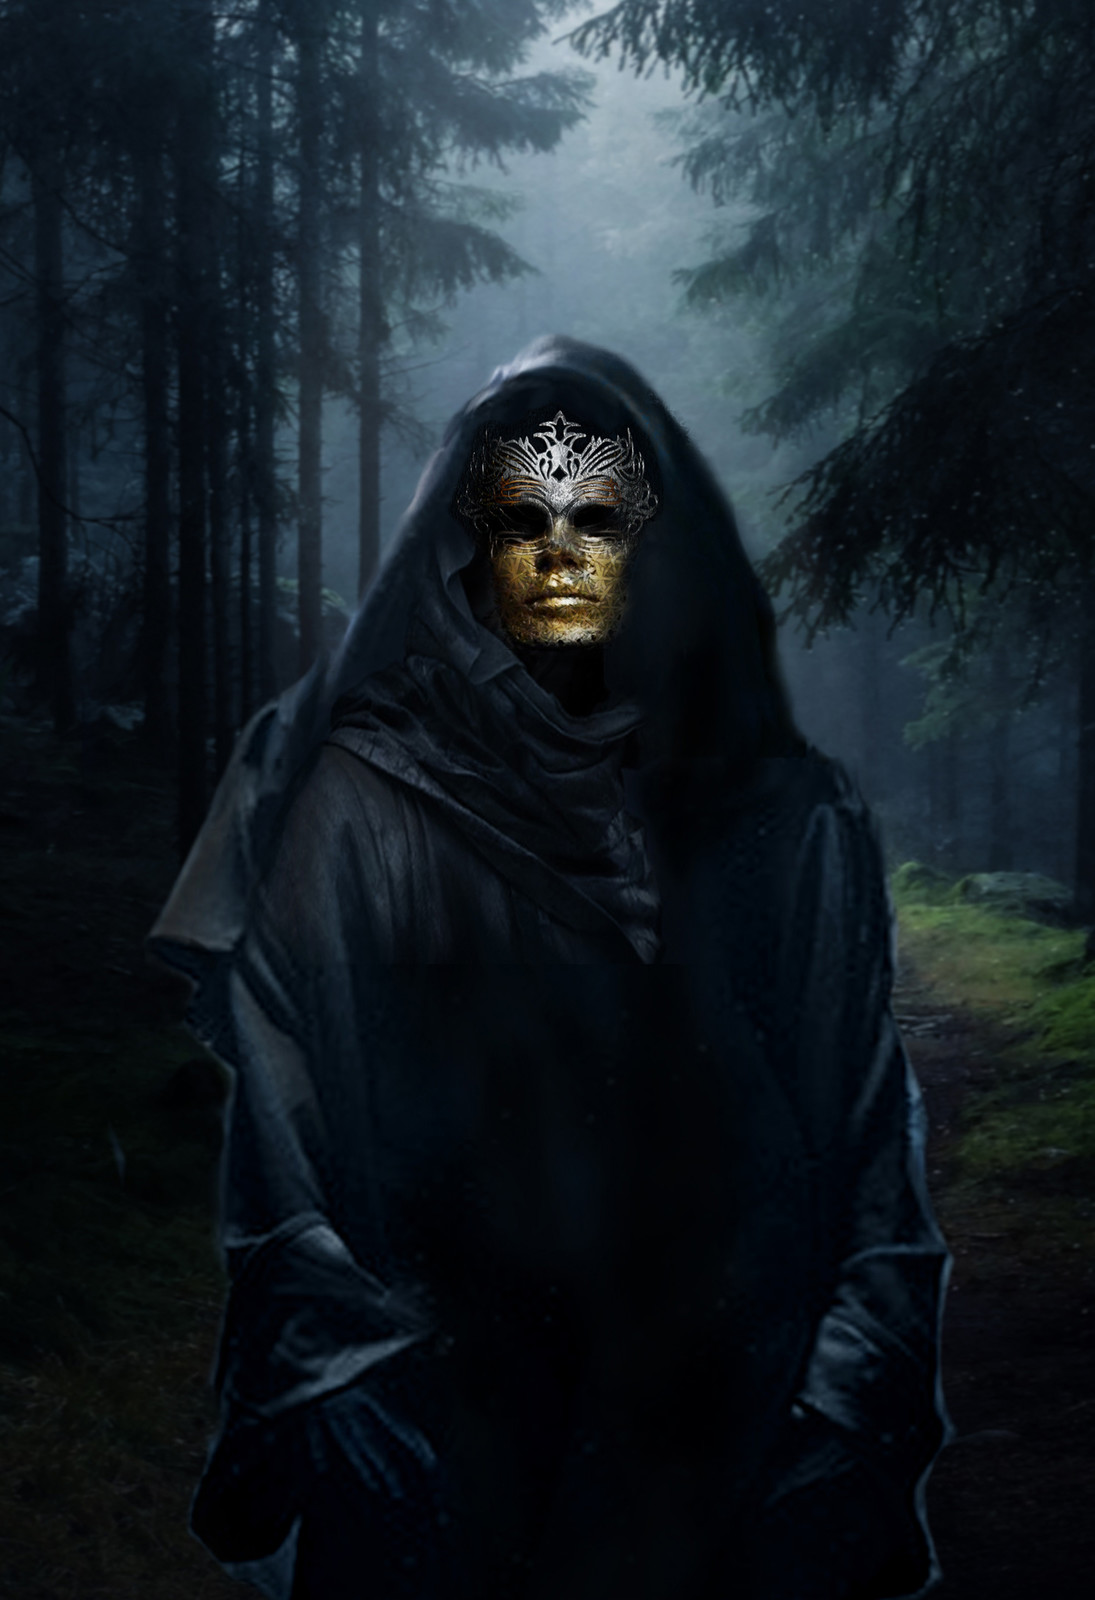 The Dark One Character Concept  / Once Upon  a Time Season 5